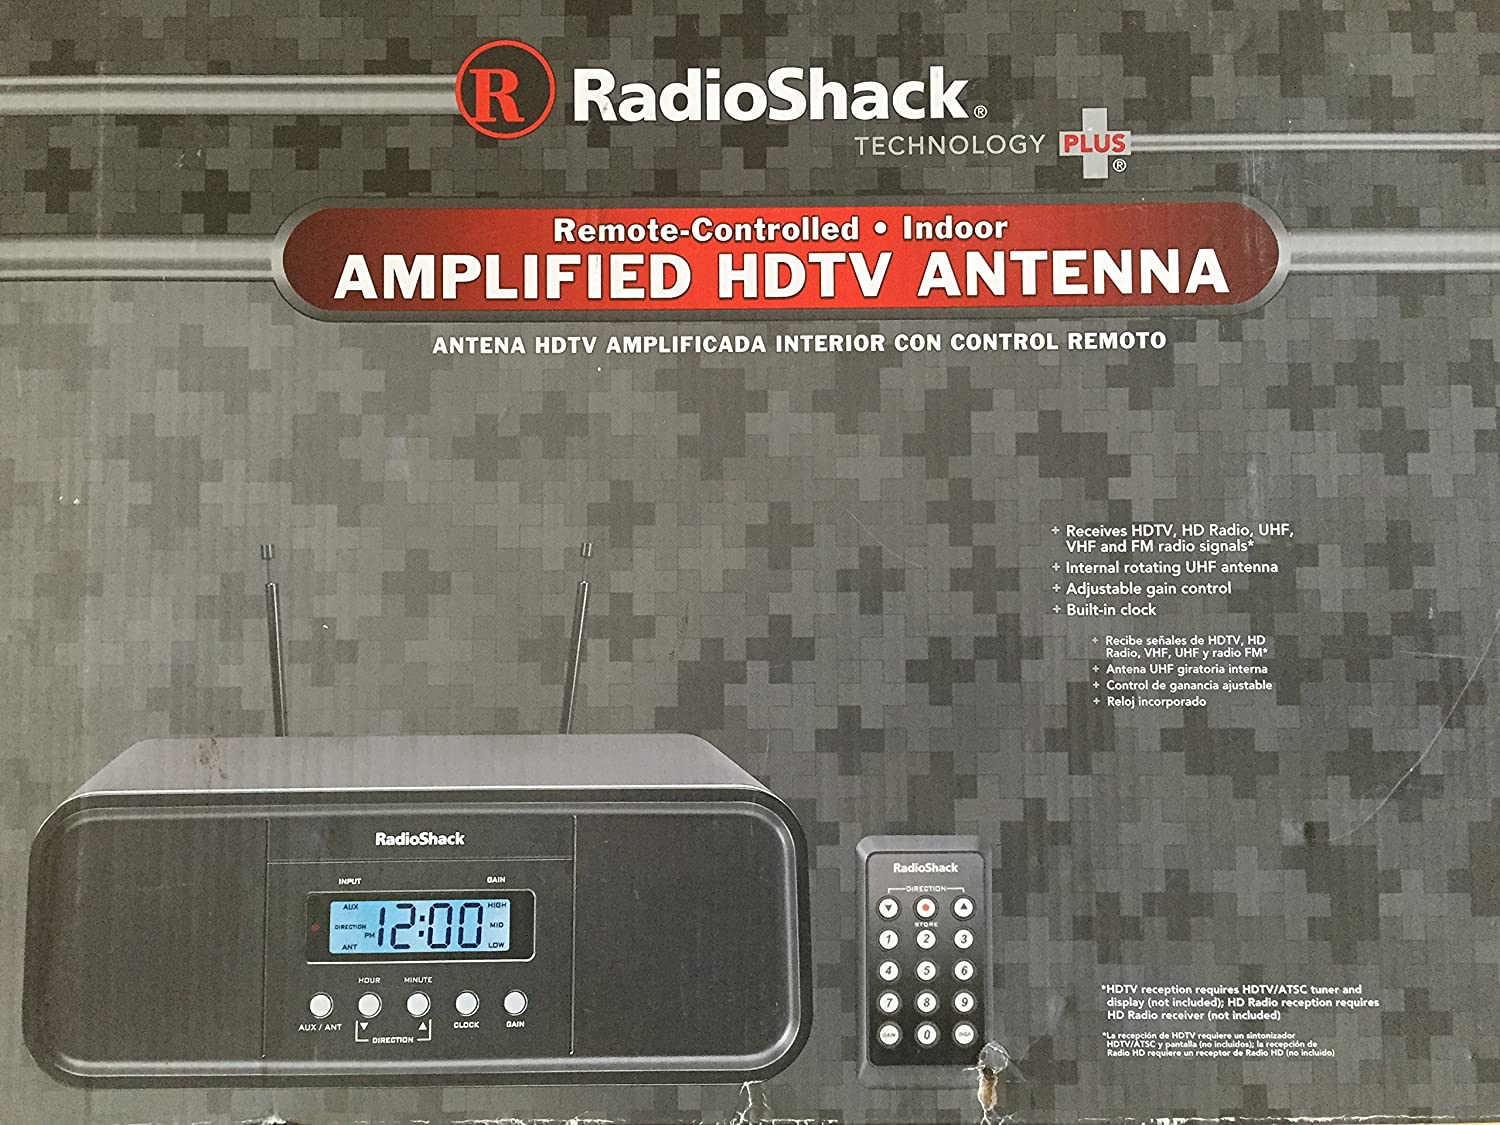 Amazon.com: Radioshack Remote Controlled Amplified Antenna: Home Audio & Theater